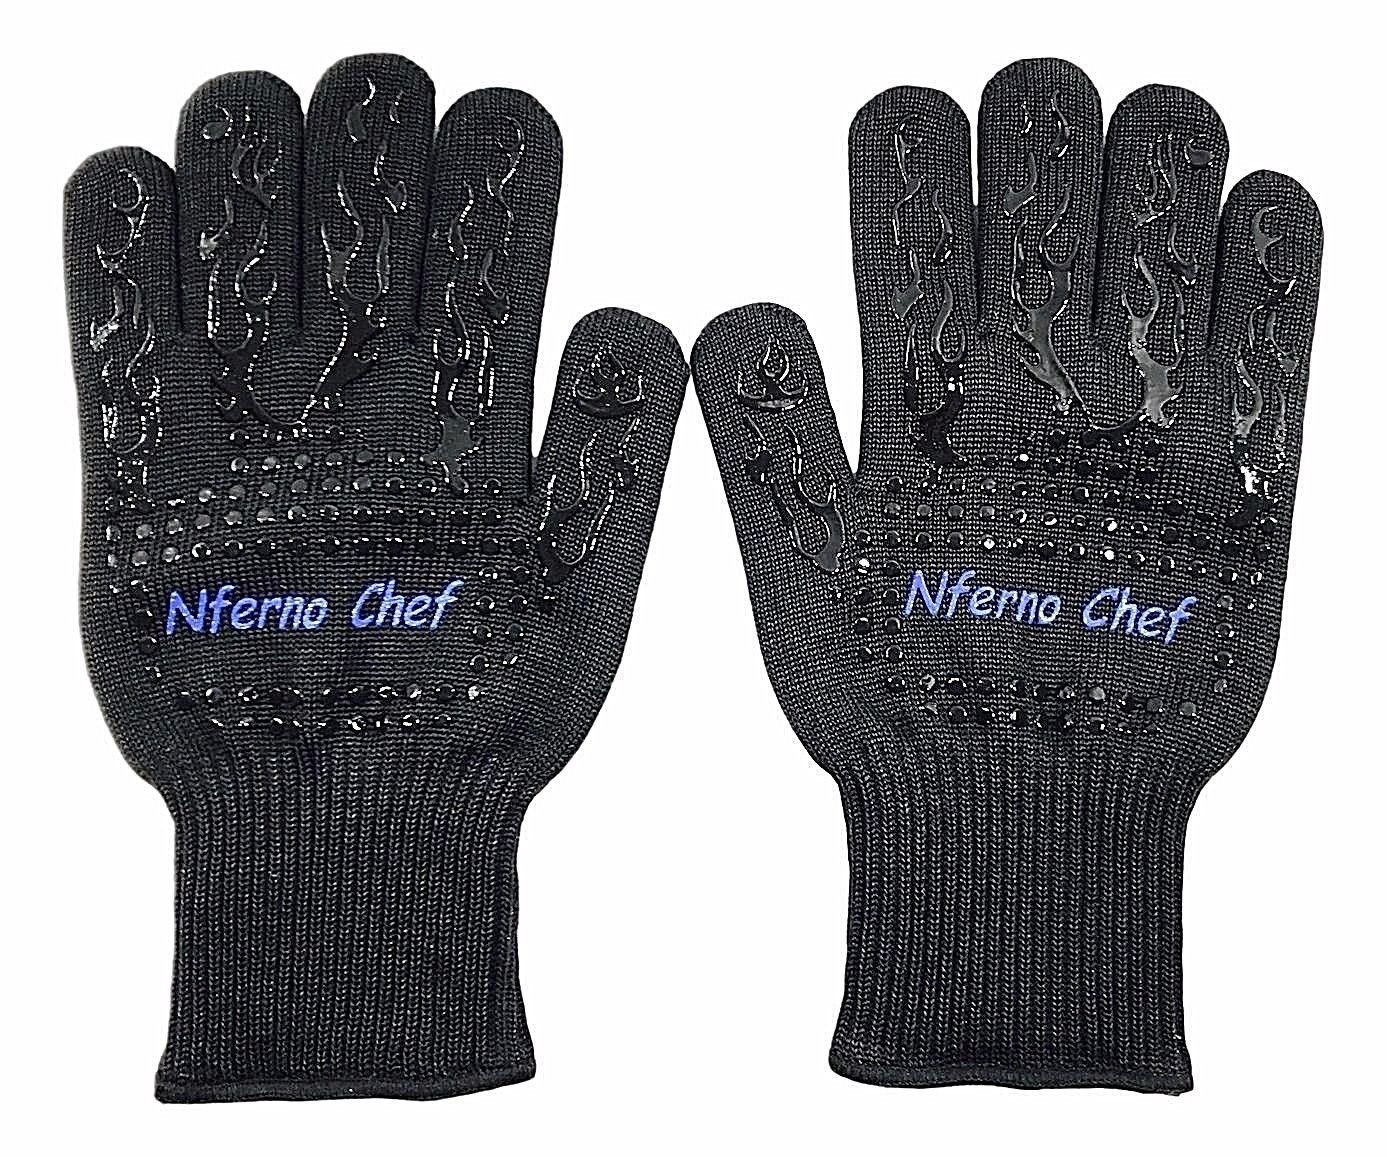 Extreme Heat Resistant Cooking Gloves (B07284hhlr)